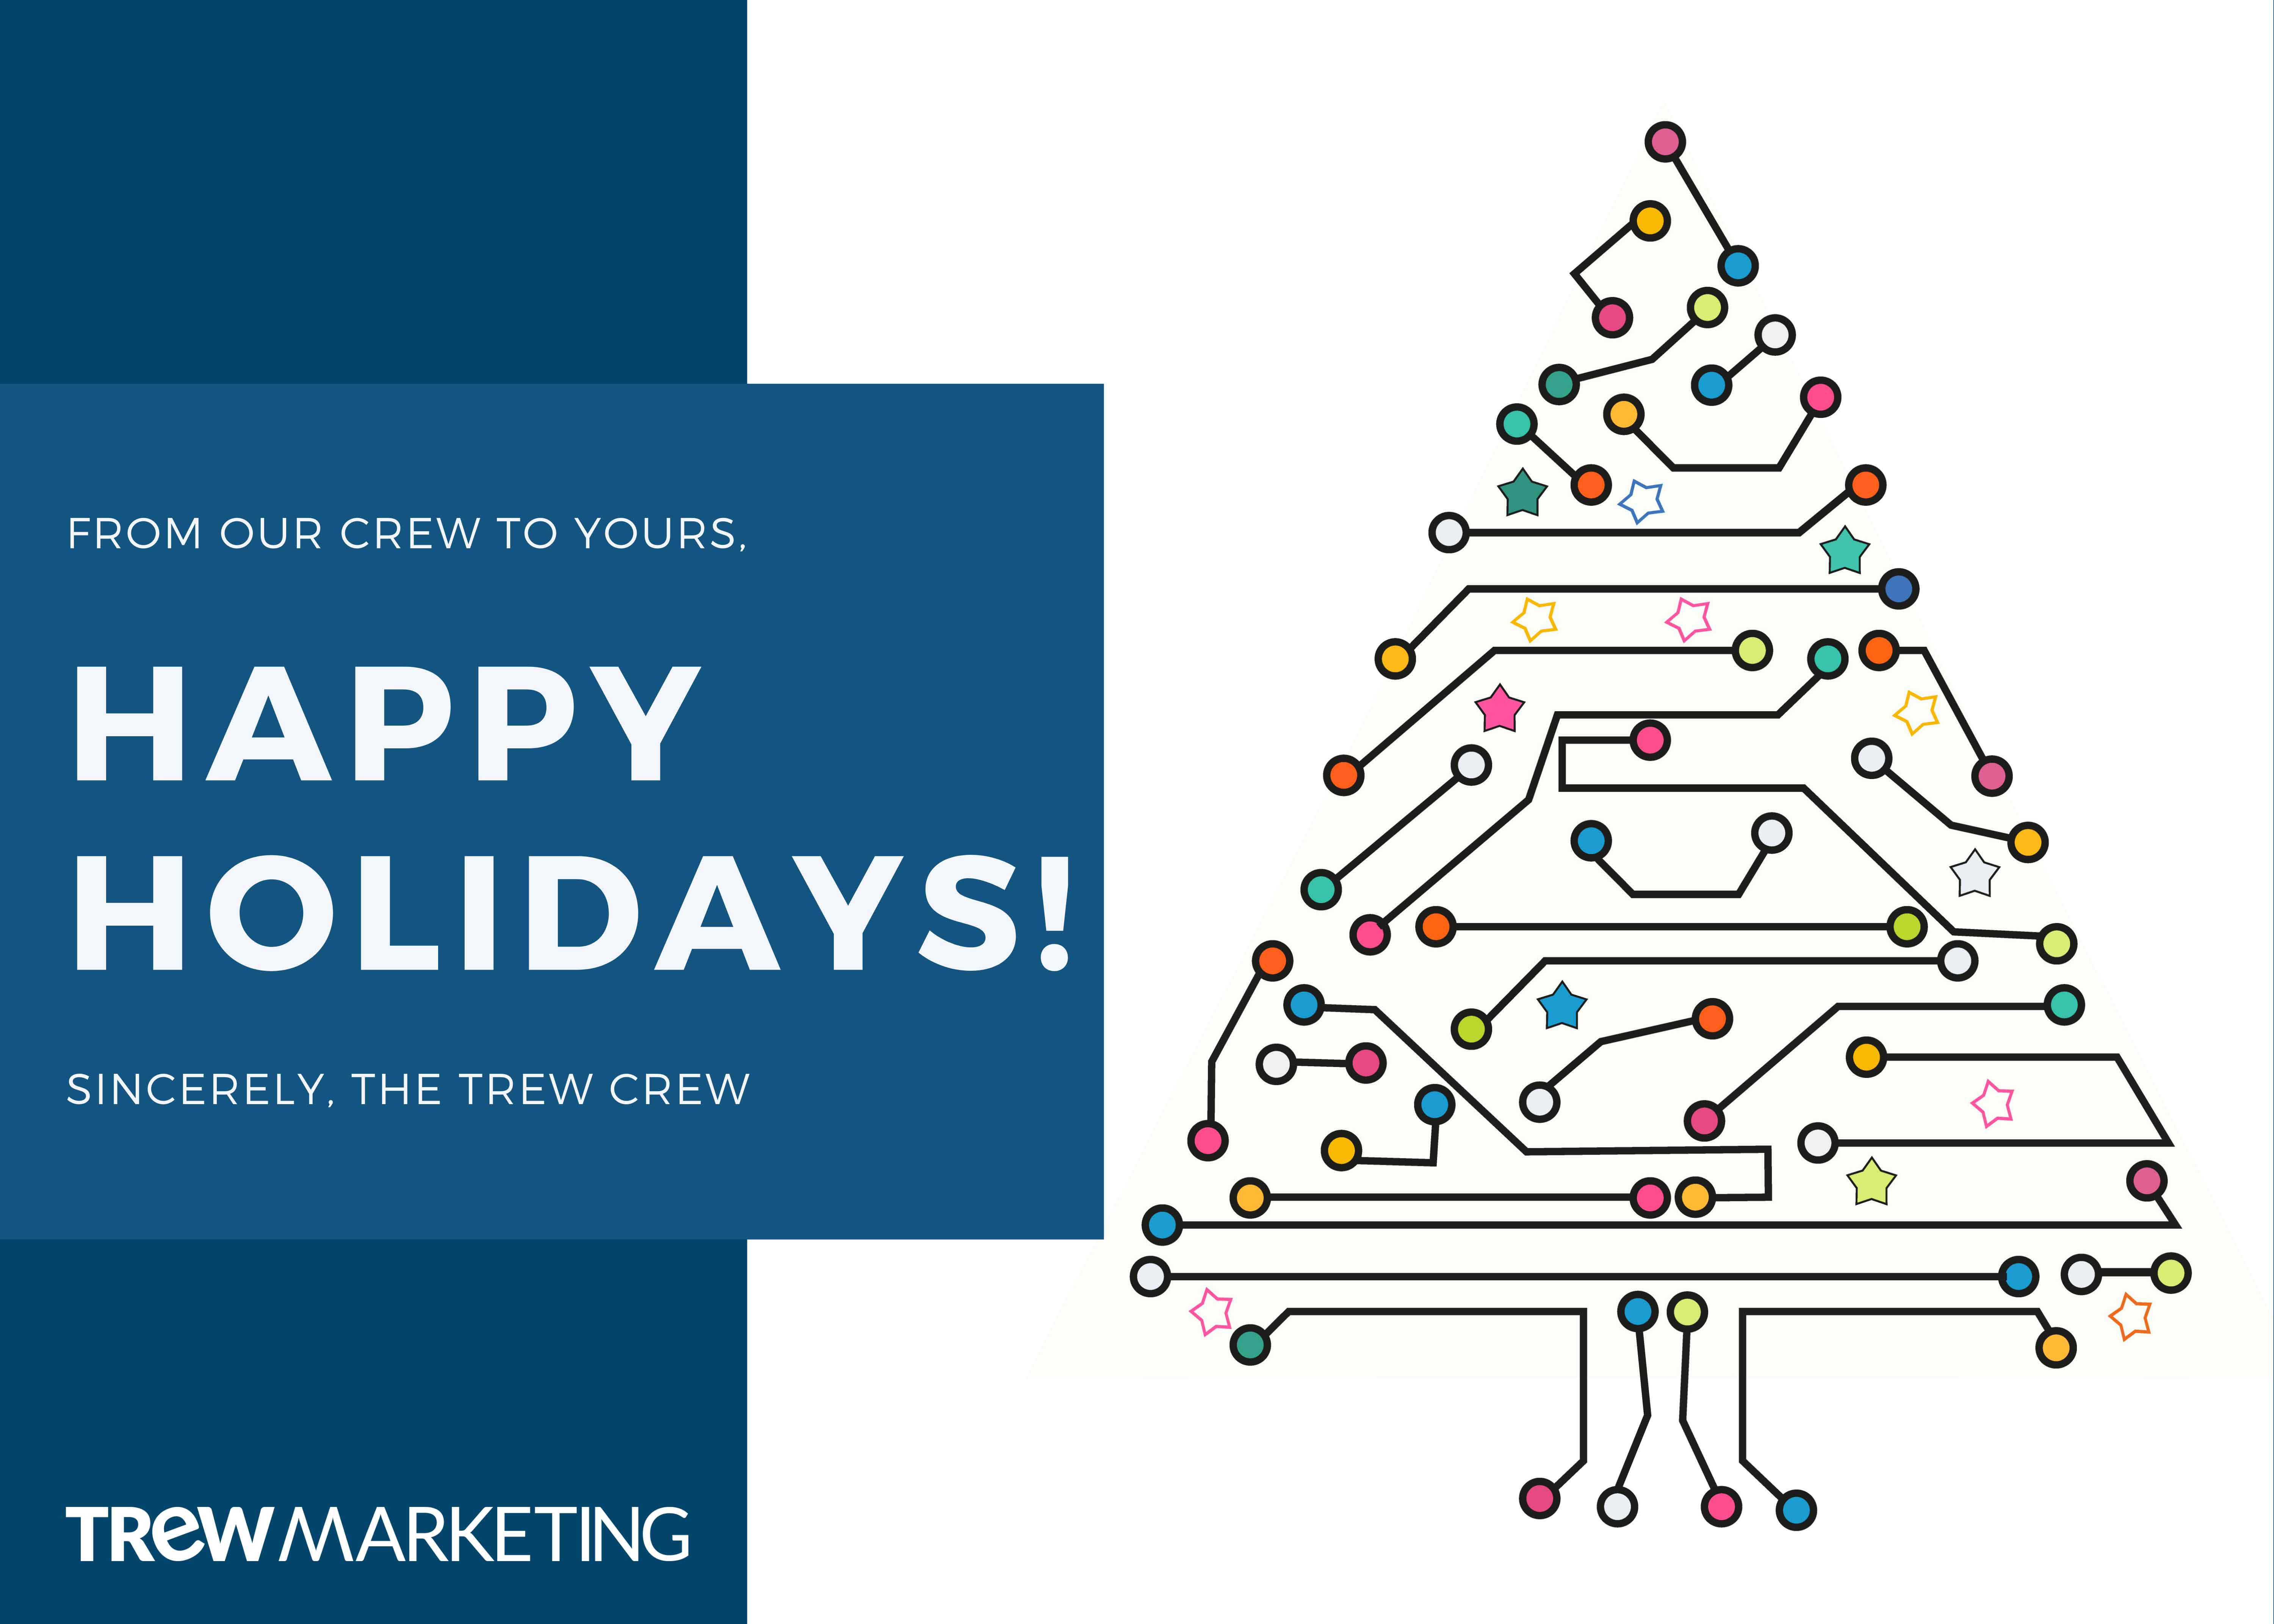 2020 TREW Holiday Day Card Video